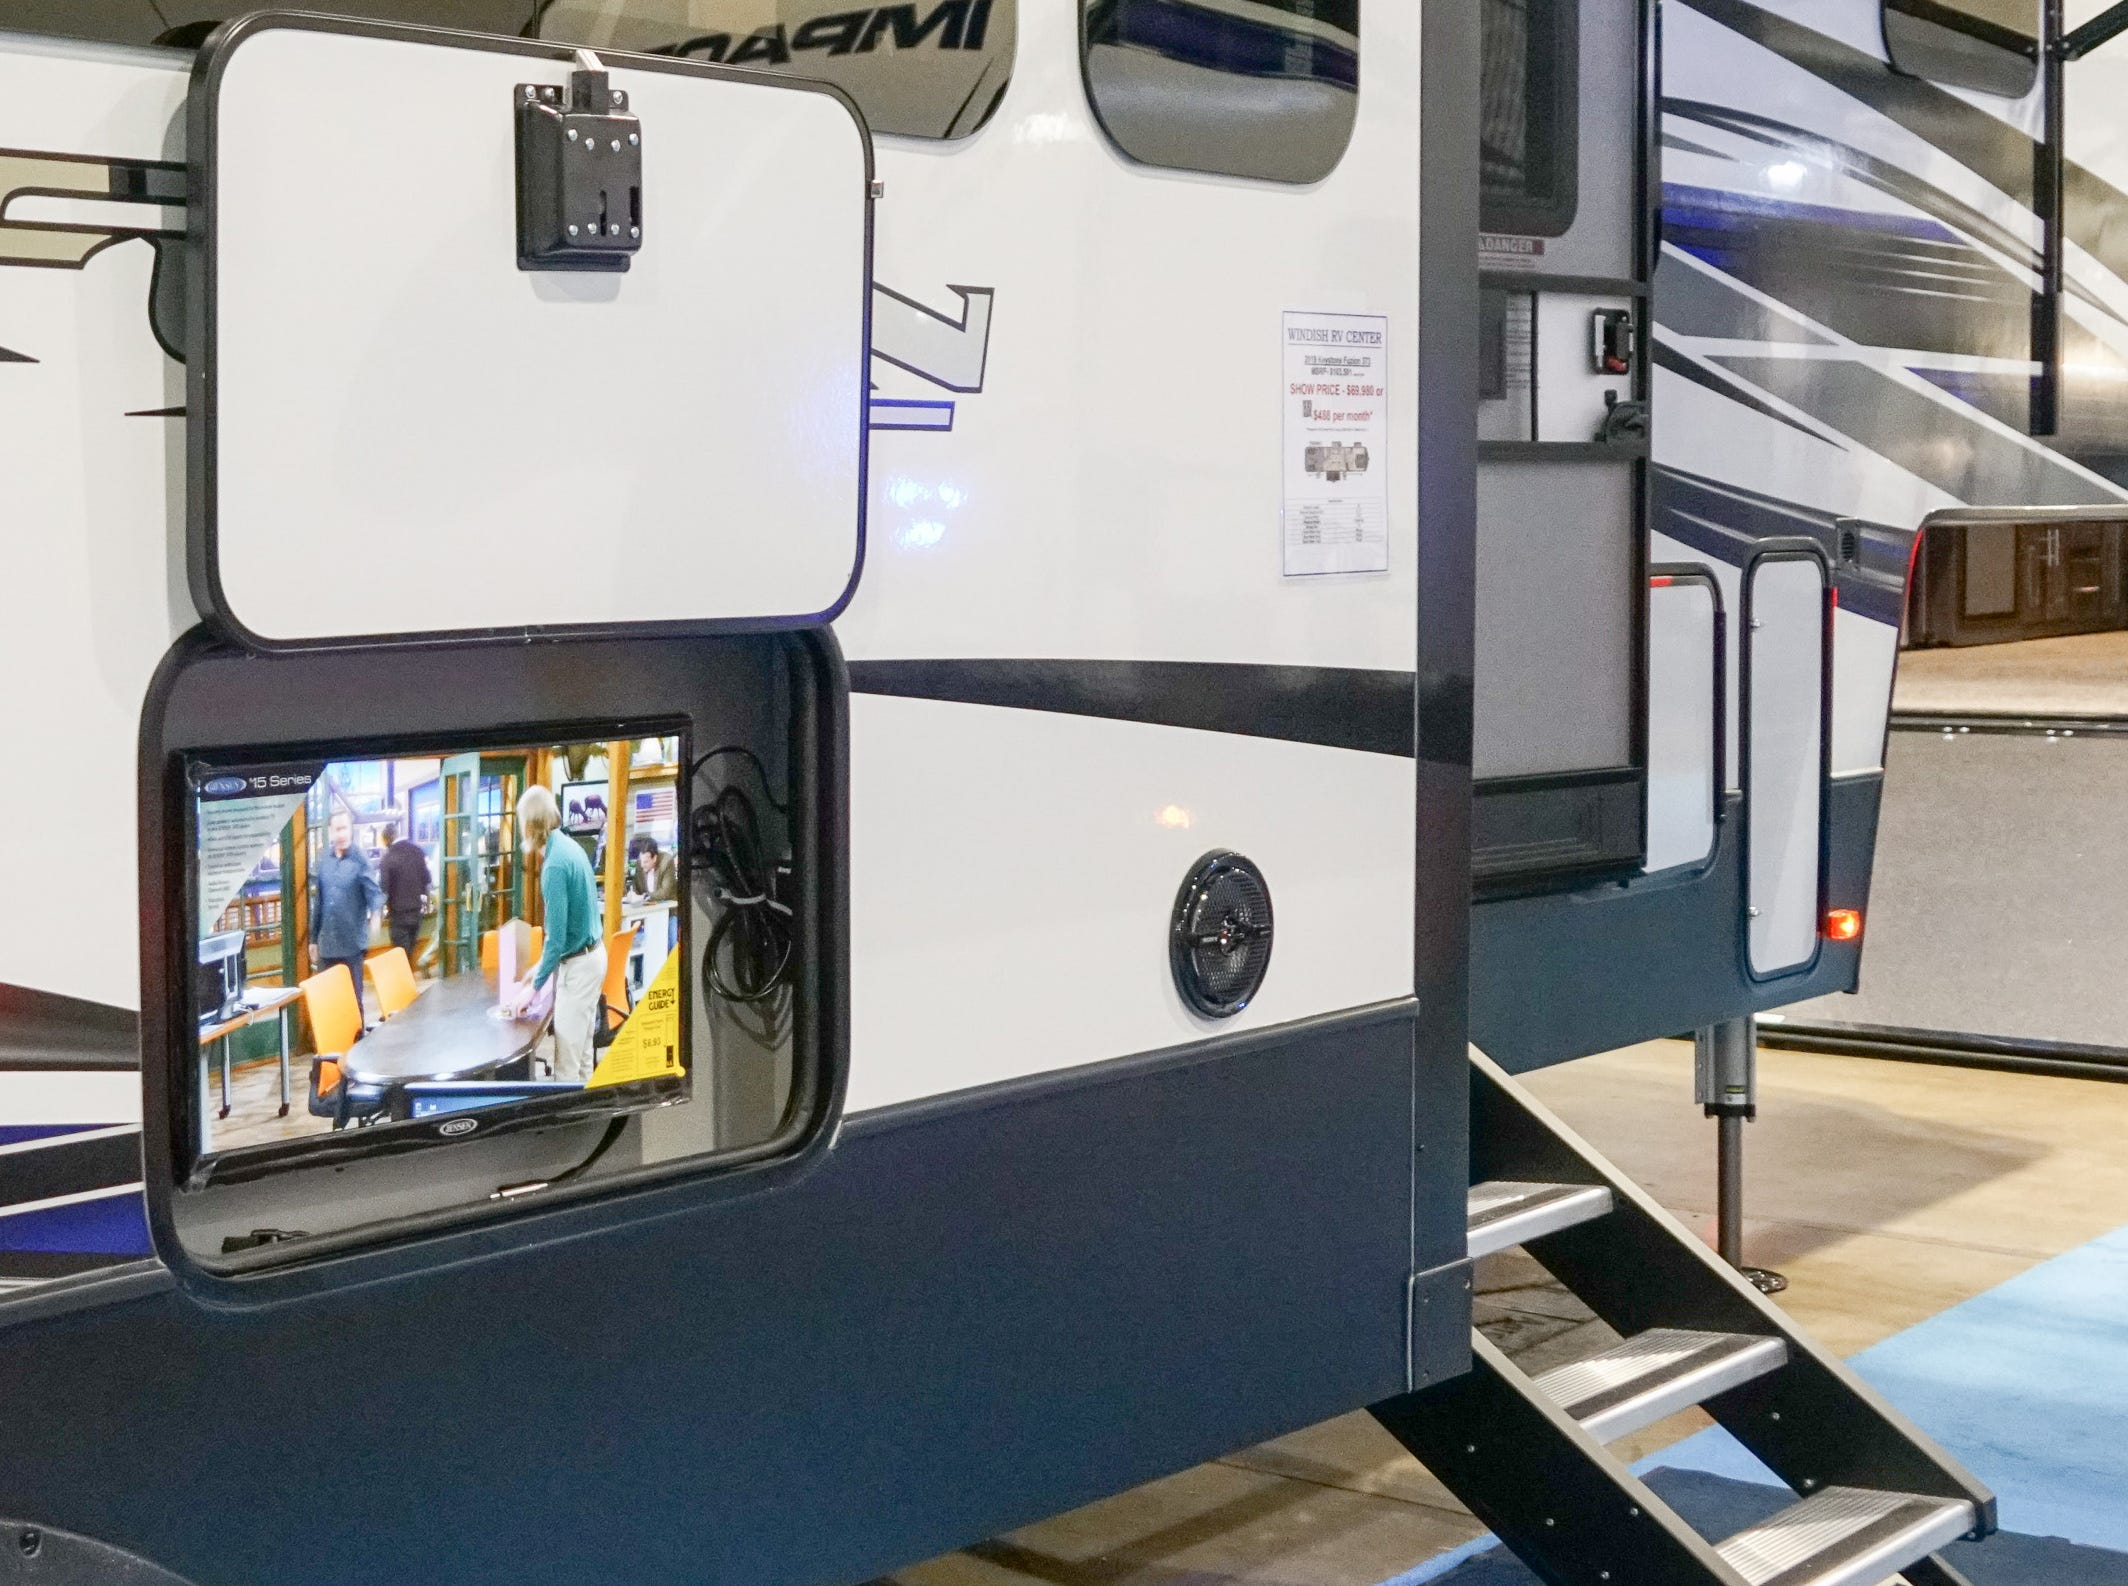 Many larger RV trailers now come designed to carry a TV that can be watched by people sitting outside.